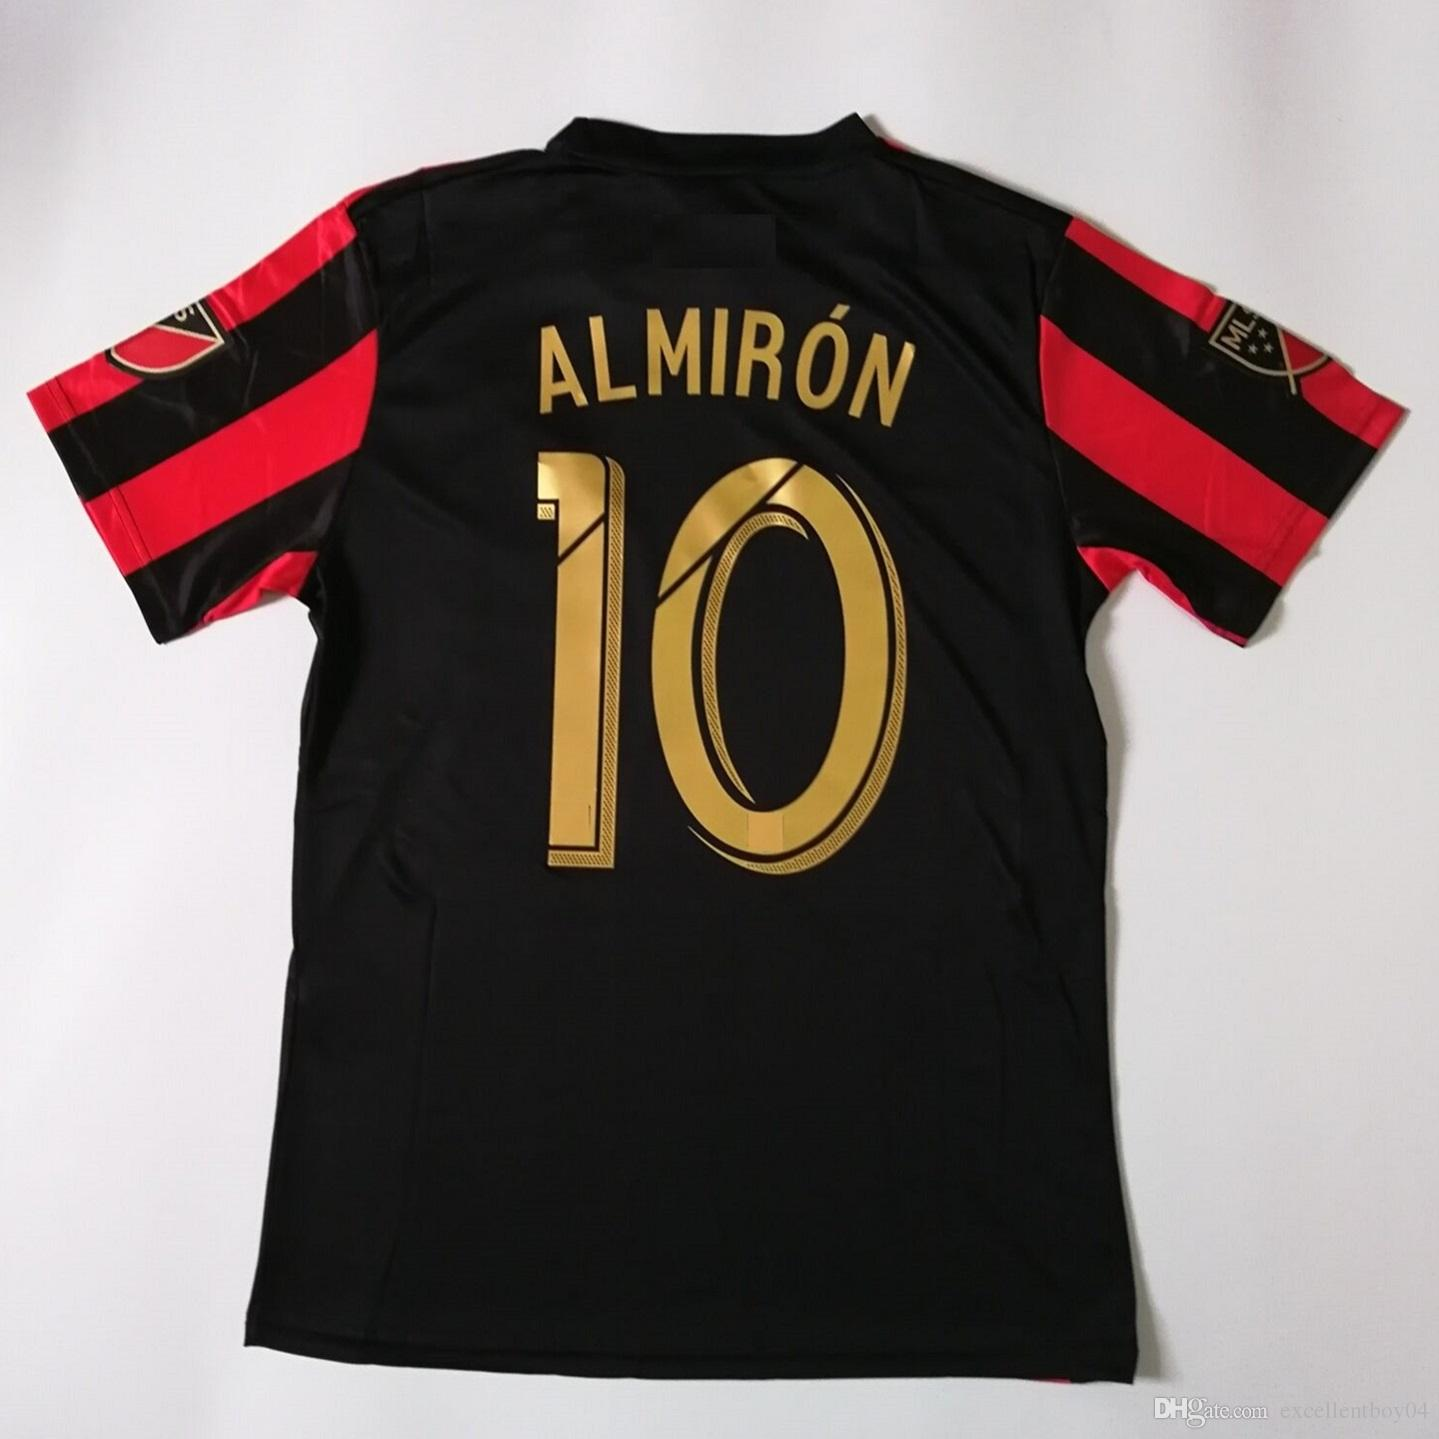 brand new 4ff7a d534f Top quality 2019 MLS Atlanta United FC Soccer Jerseys #10 G.MARTINEZ  Atlanta United FC Home red black Soccer Shirt 2019 A1